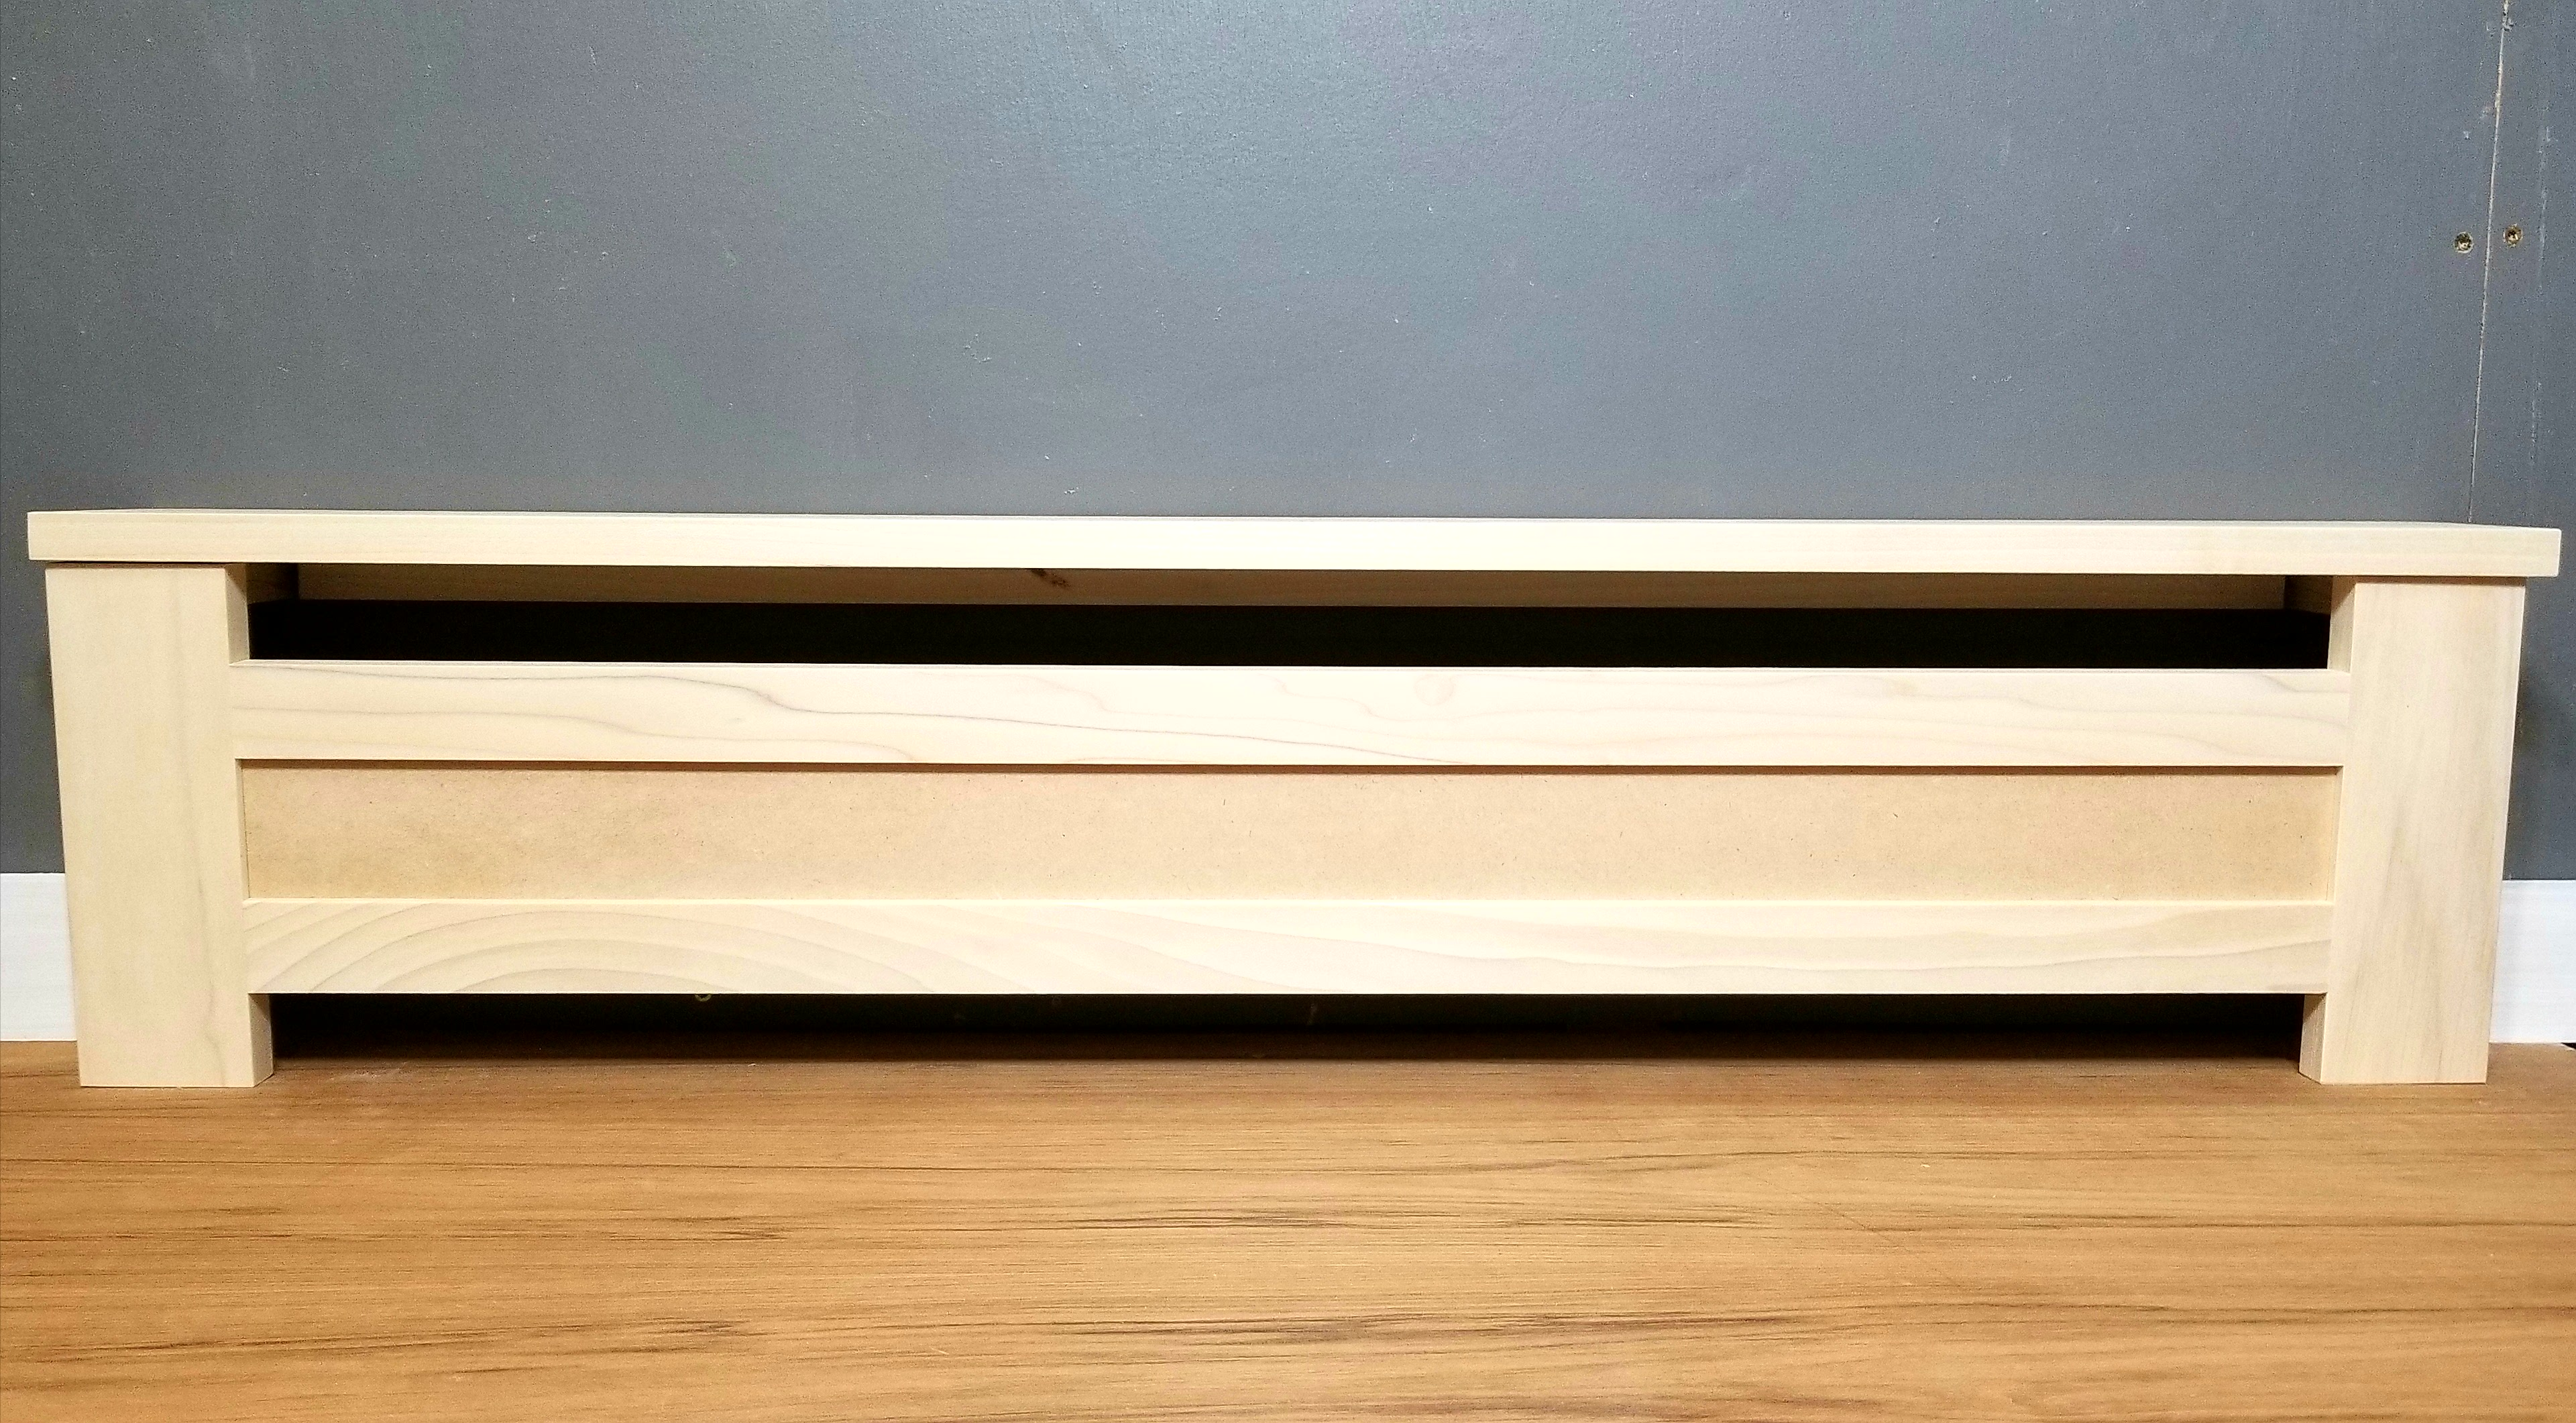 Shaker Baseboard Heater Cover